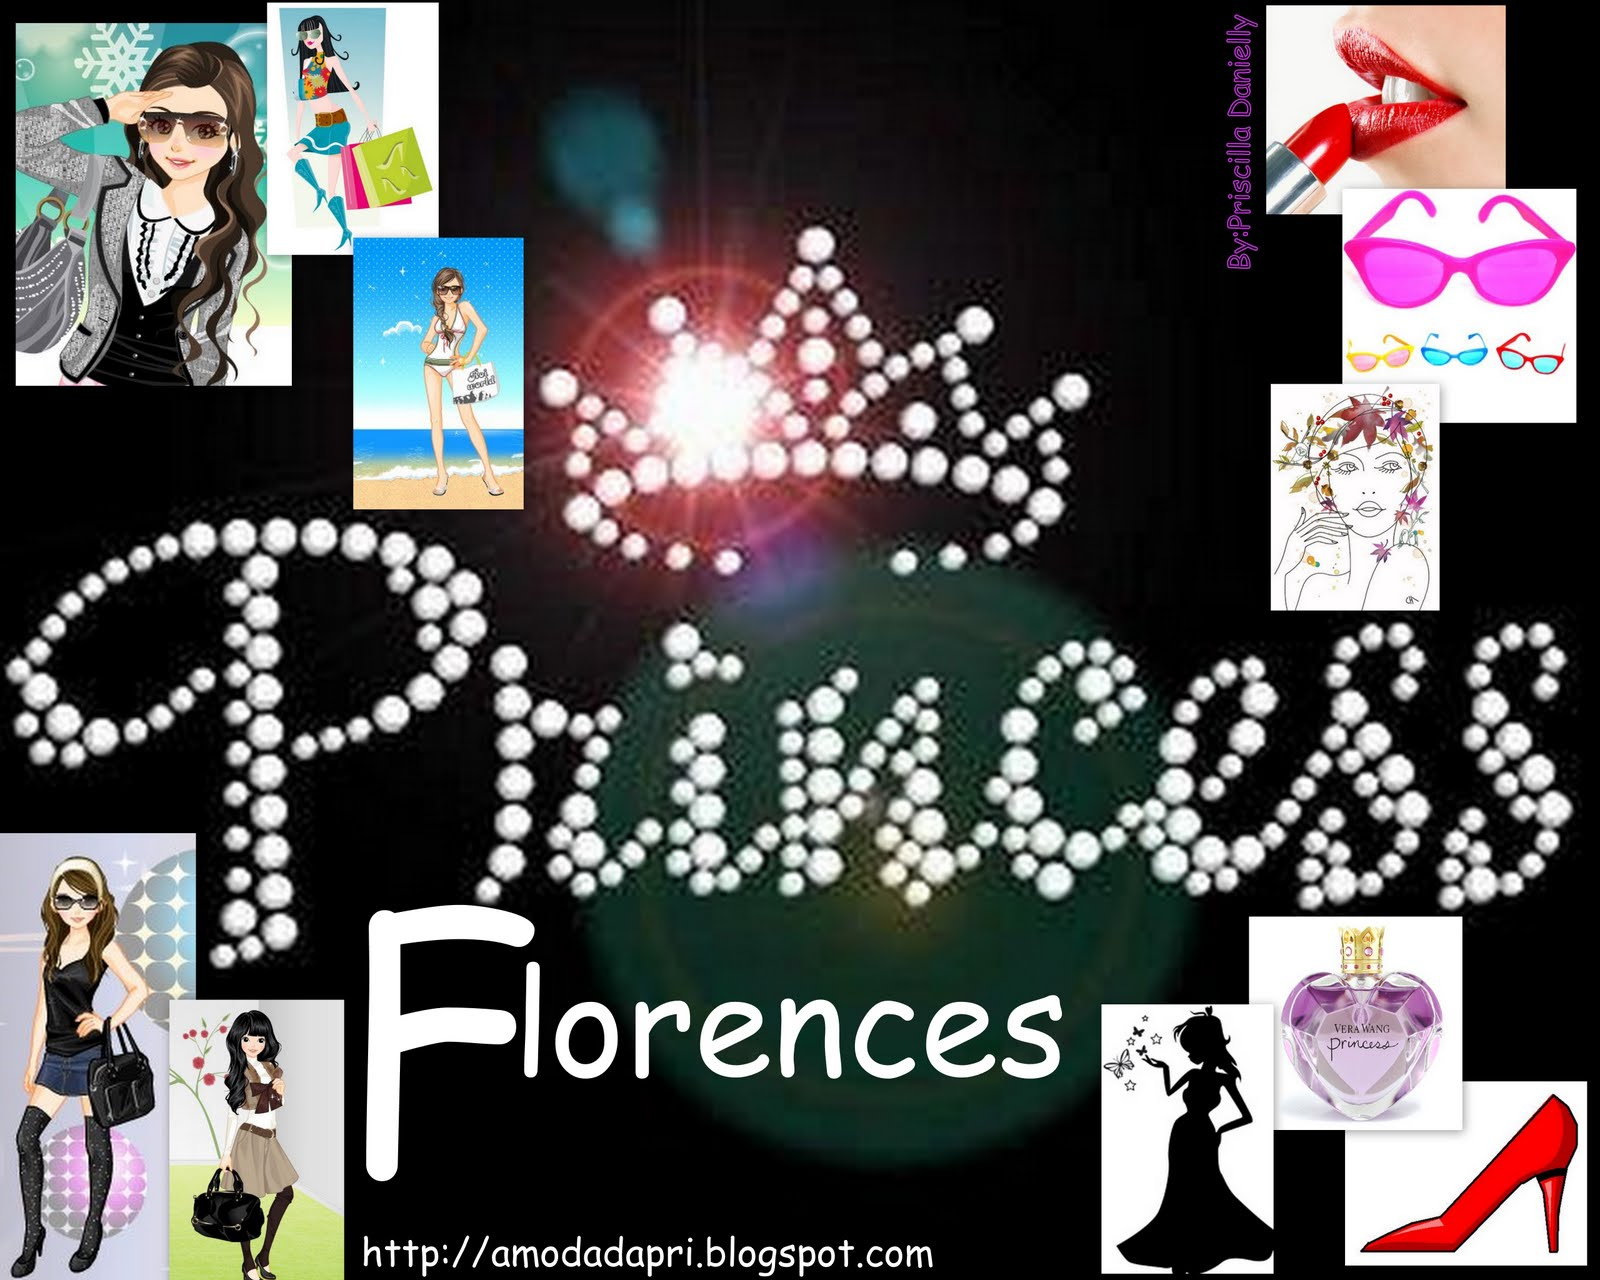 Princess Florences